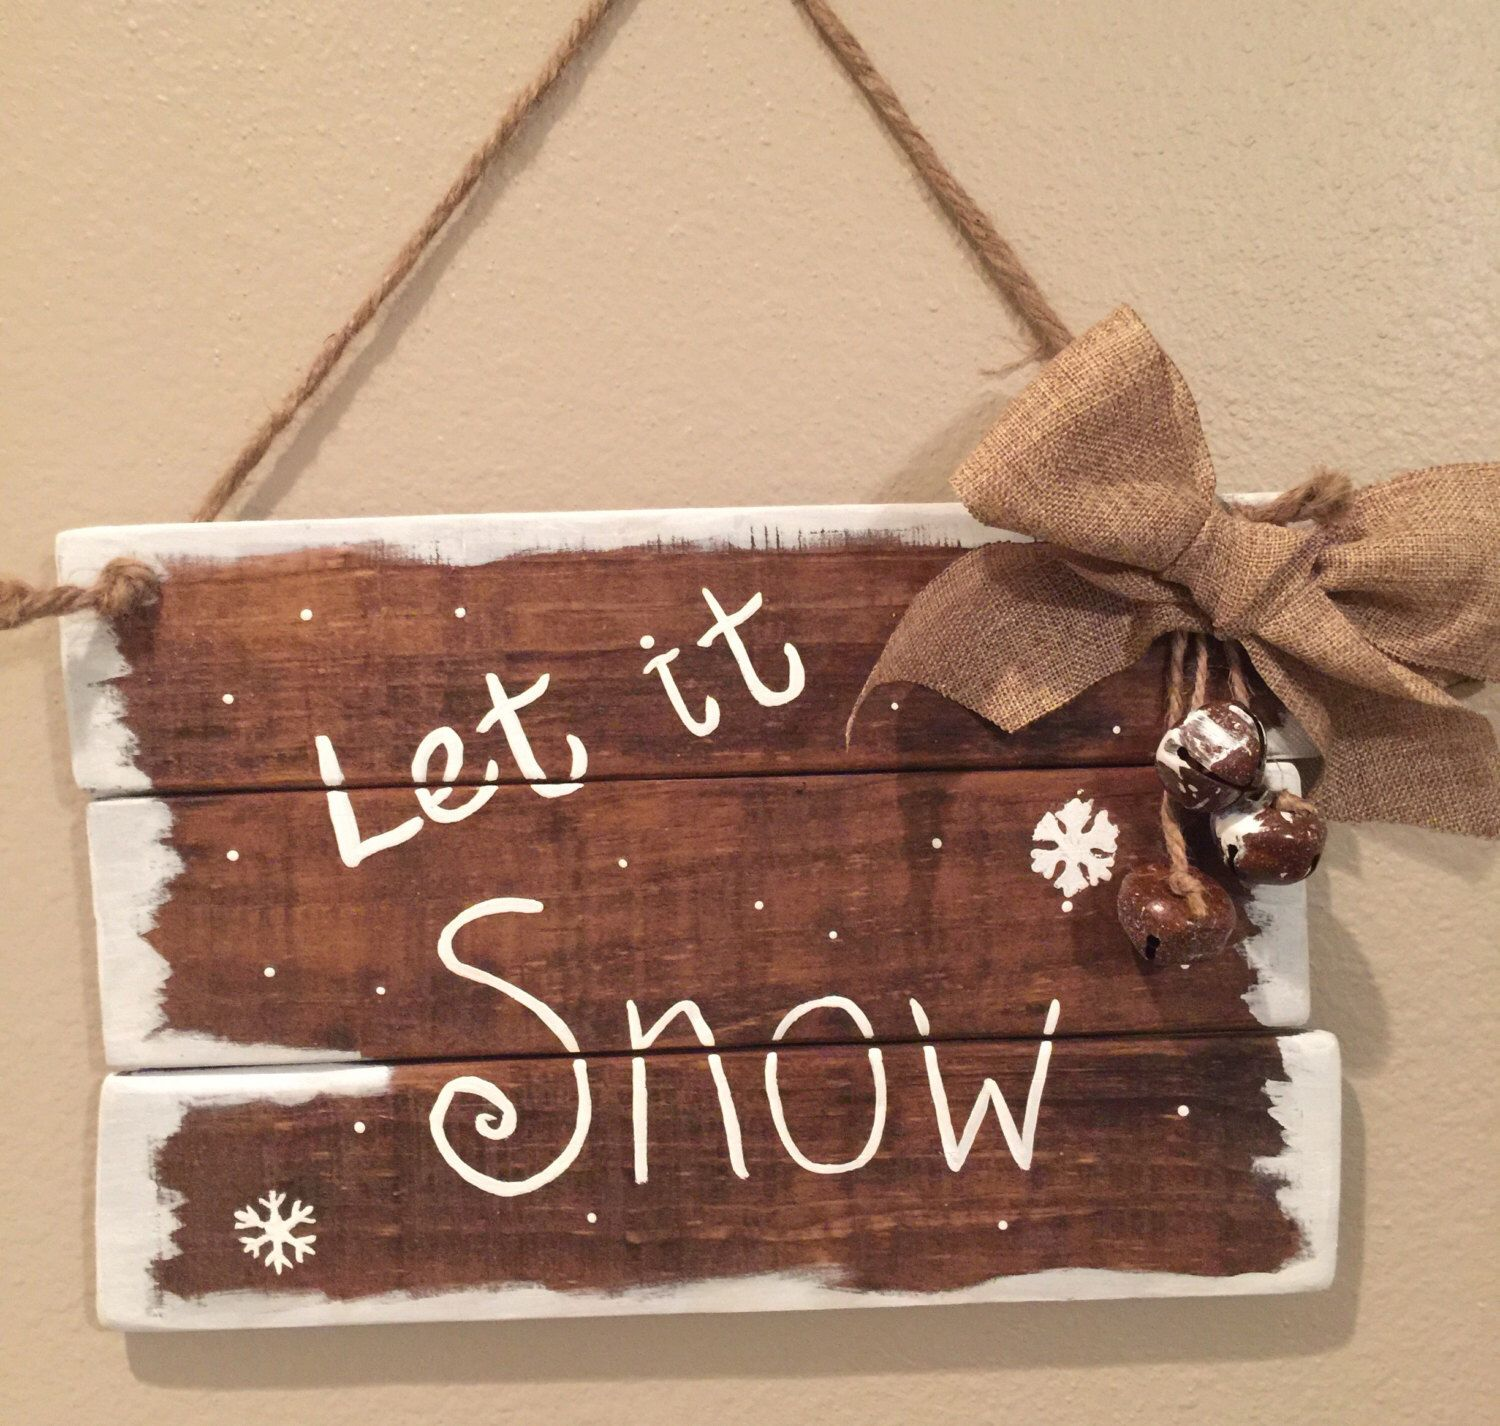 rustic christmas pallet signs let it snow christmas signs rustic christmas decorations winter decor https